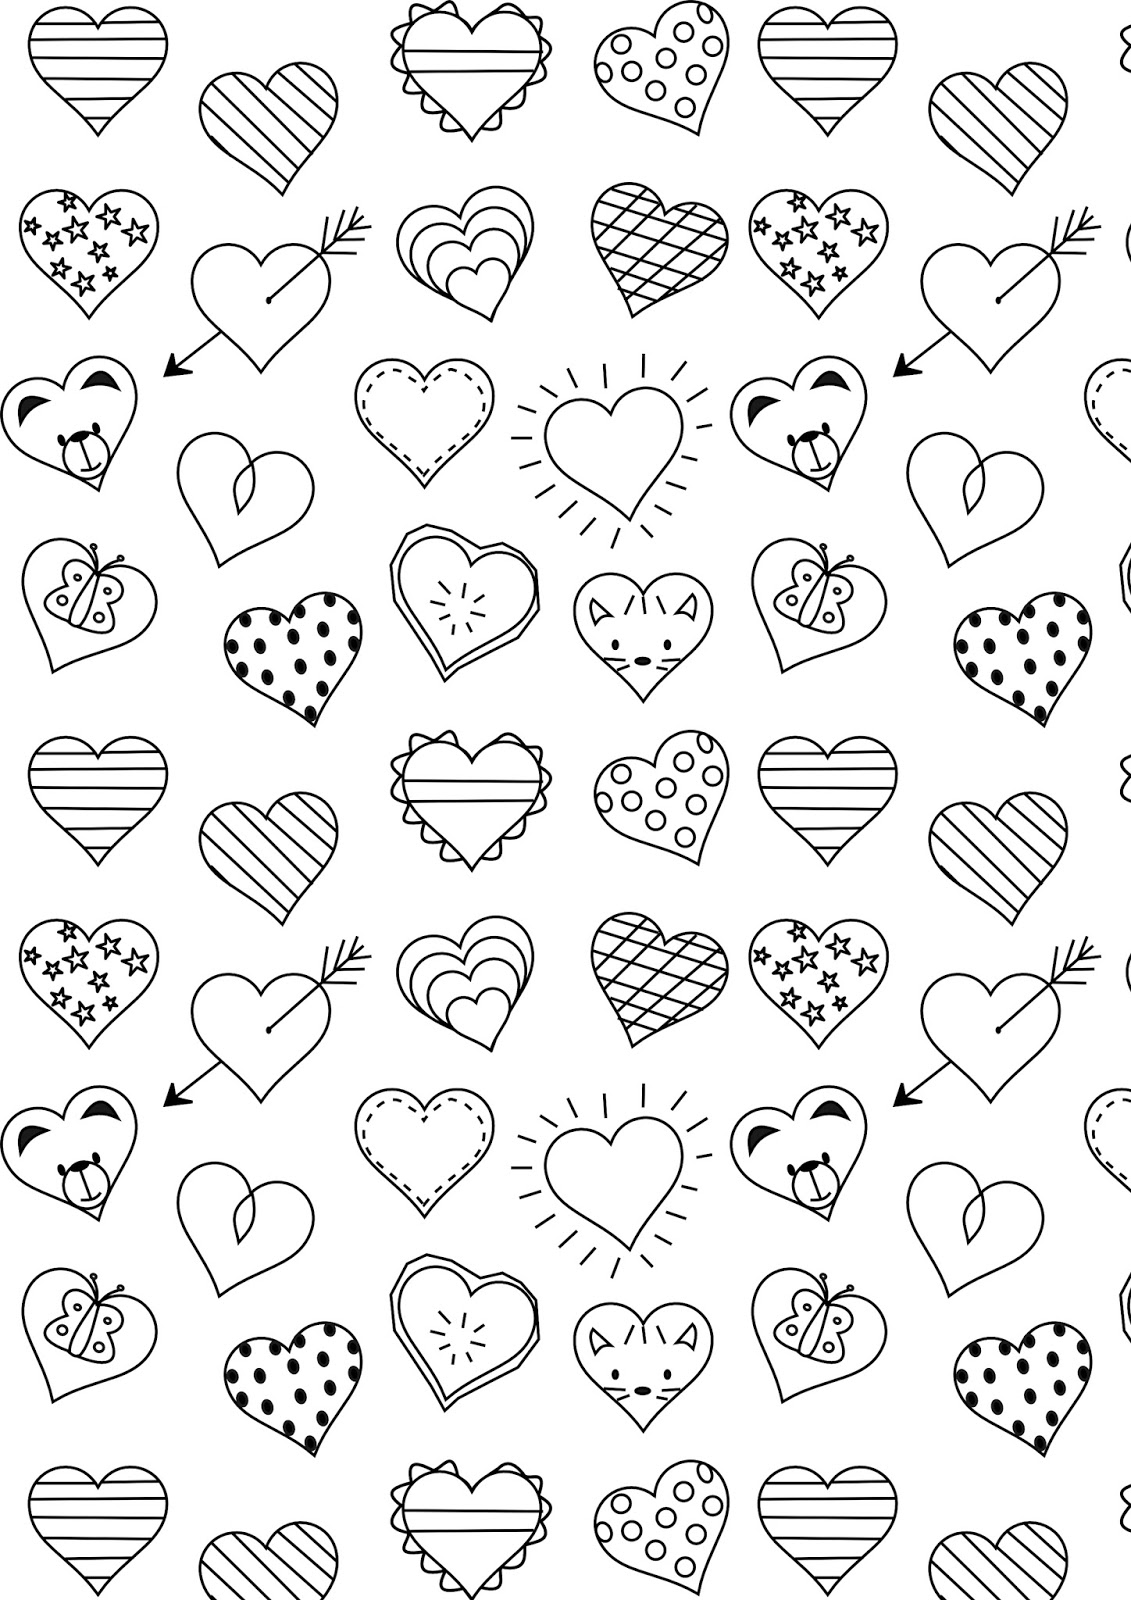 printable hearts coloring pages easy heart coloring pages for kids stripe patterns coloring hearts printable pages